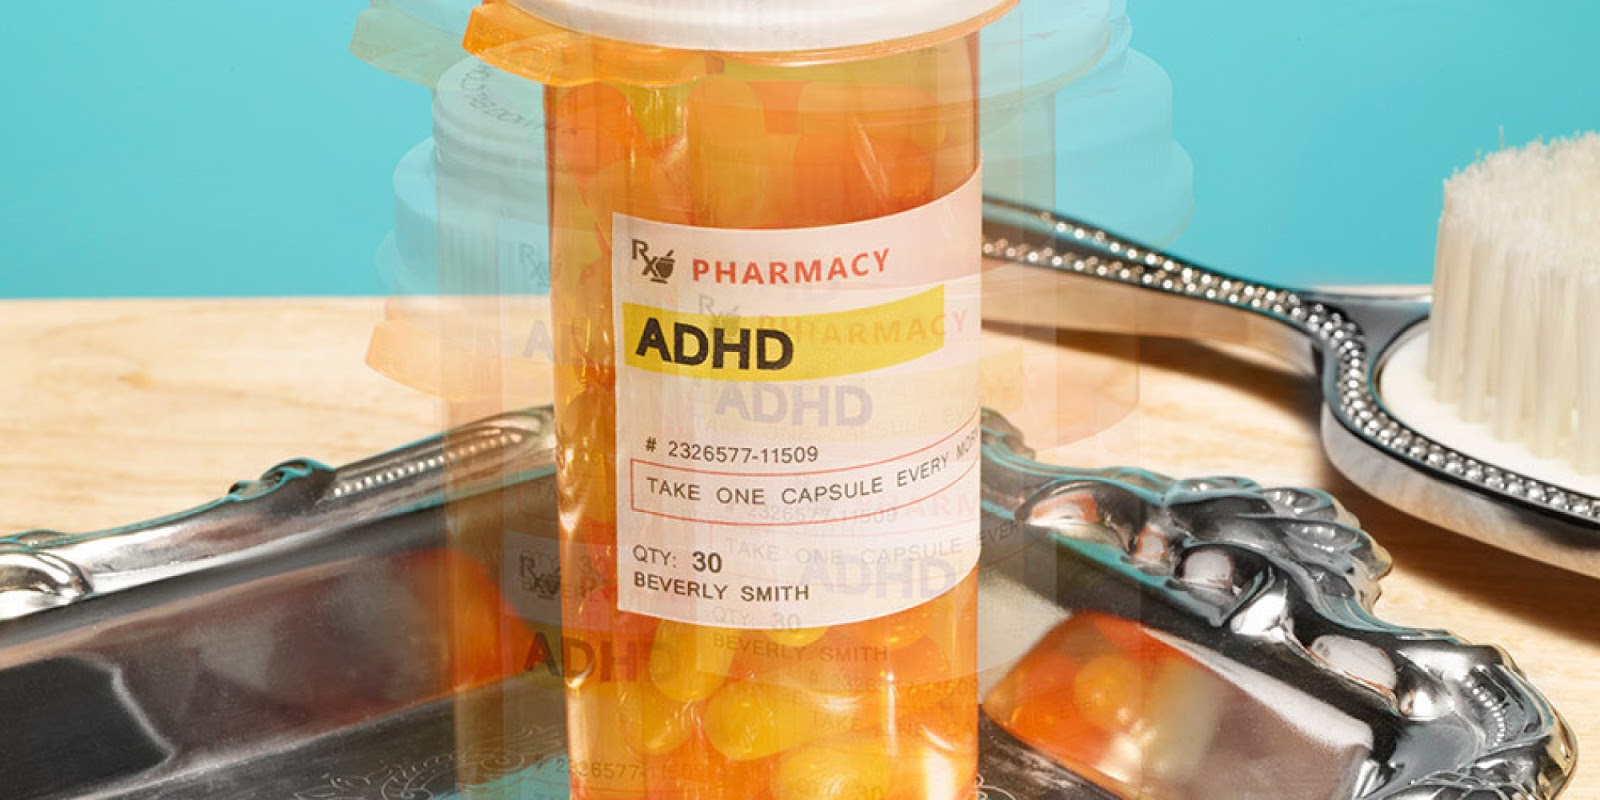 Colour therapy for hyperactivity -  Approximately 11 Of American Children Between The Ages Of 4 And 17 Have Been Diagnosed With Attention Deficit Hyperactivity Disorder Adhd As Of 2011